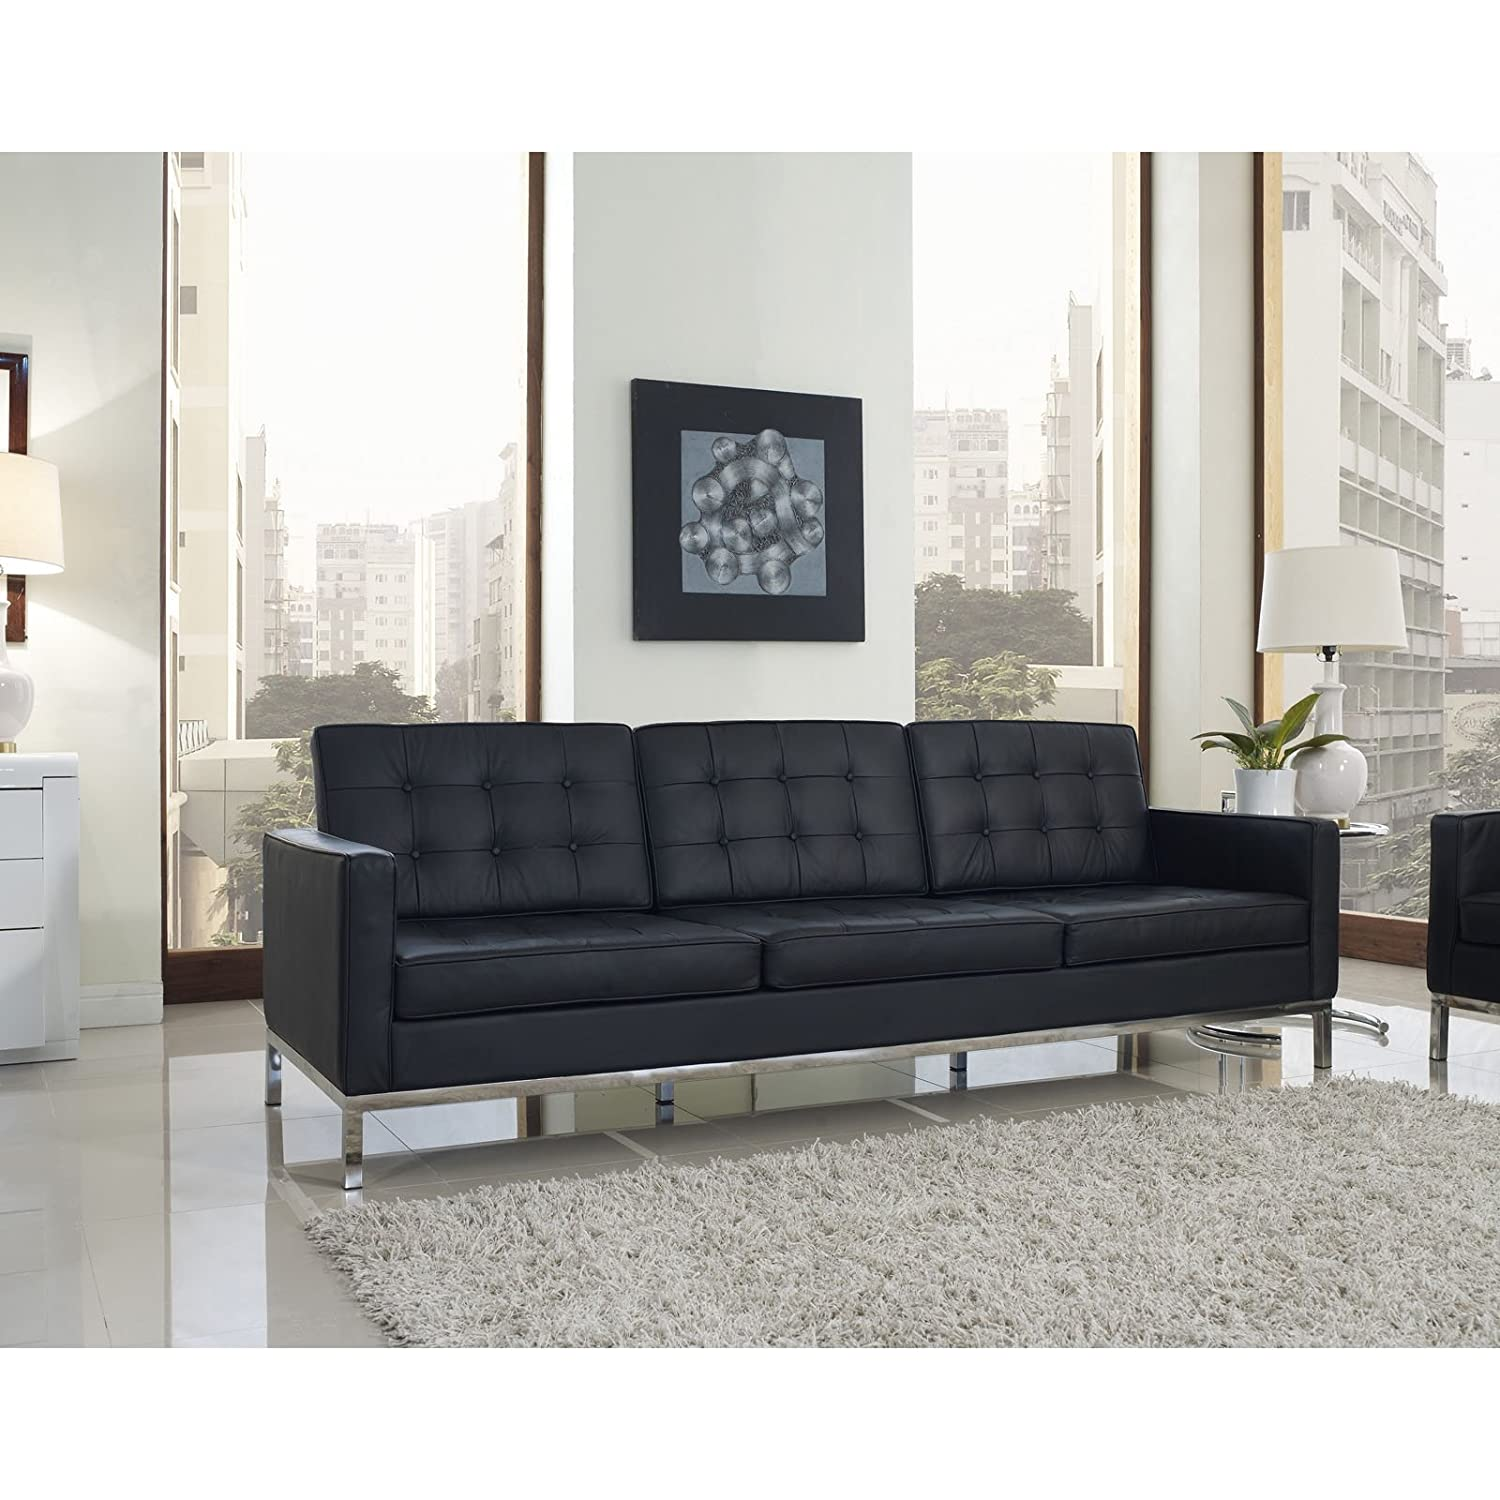 Modern black sofas - Amazon Com Modway Florence Style Sofa In Black Genuine Leather Kitchen Dining